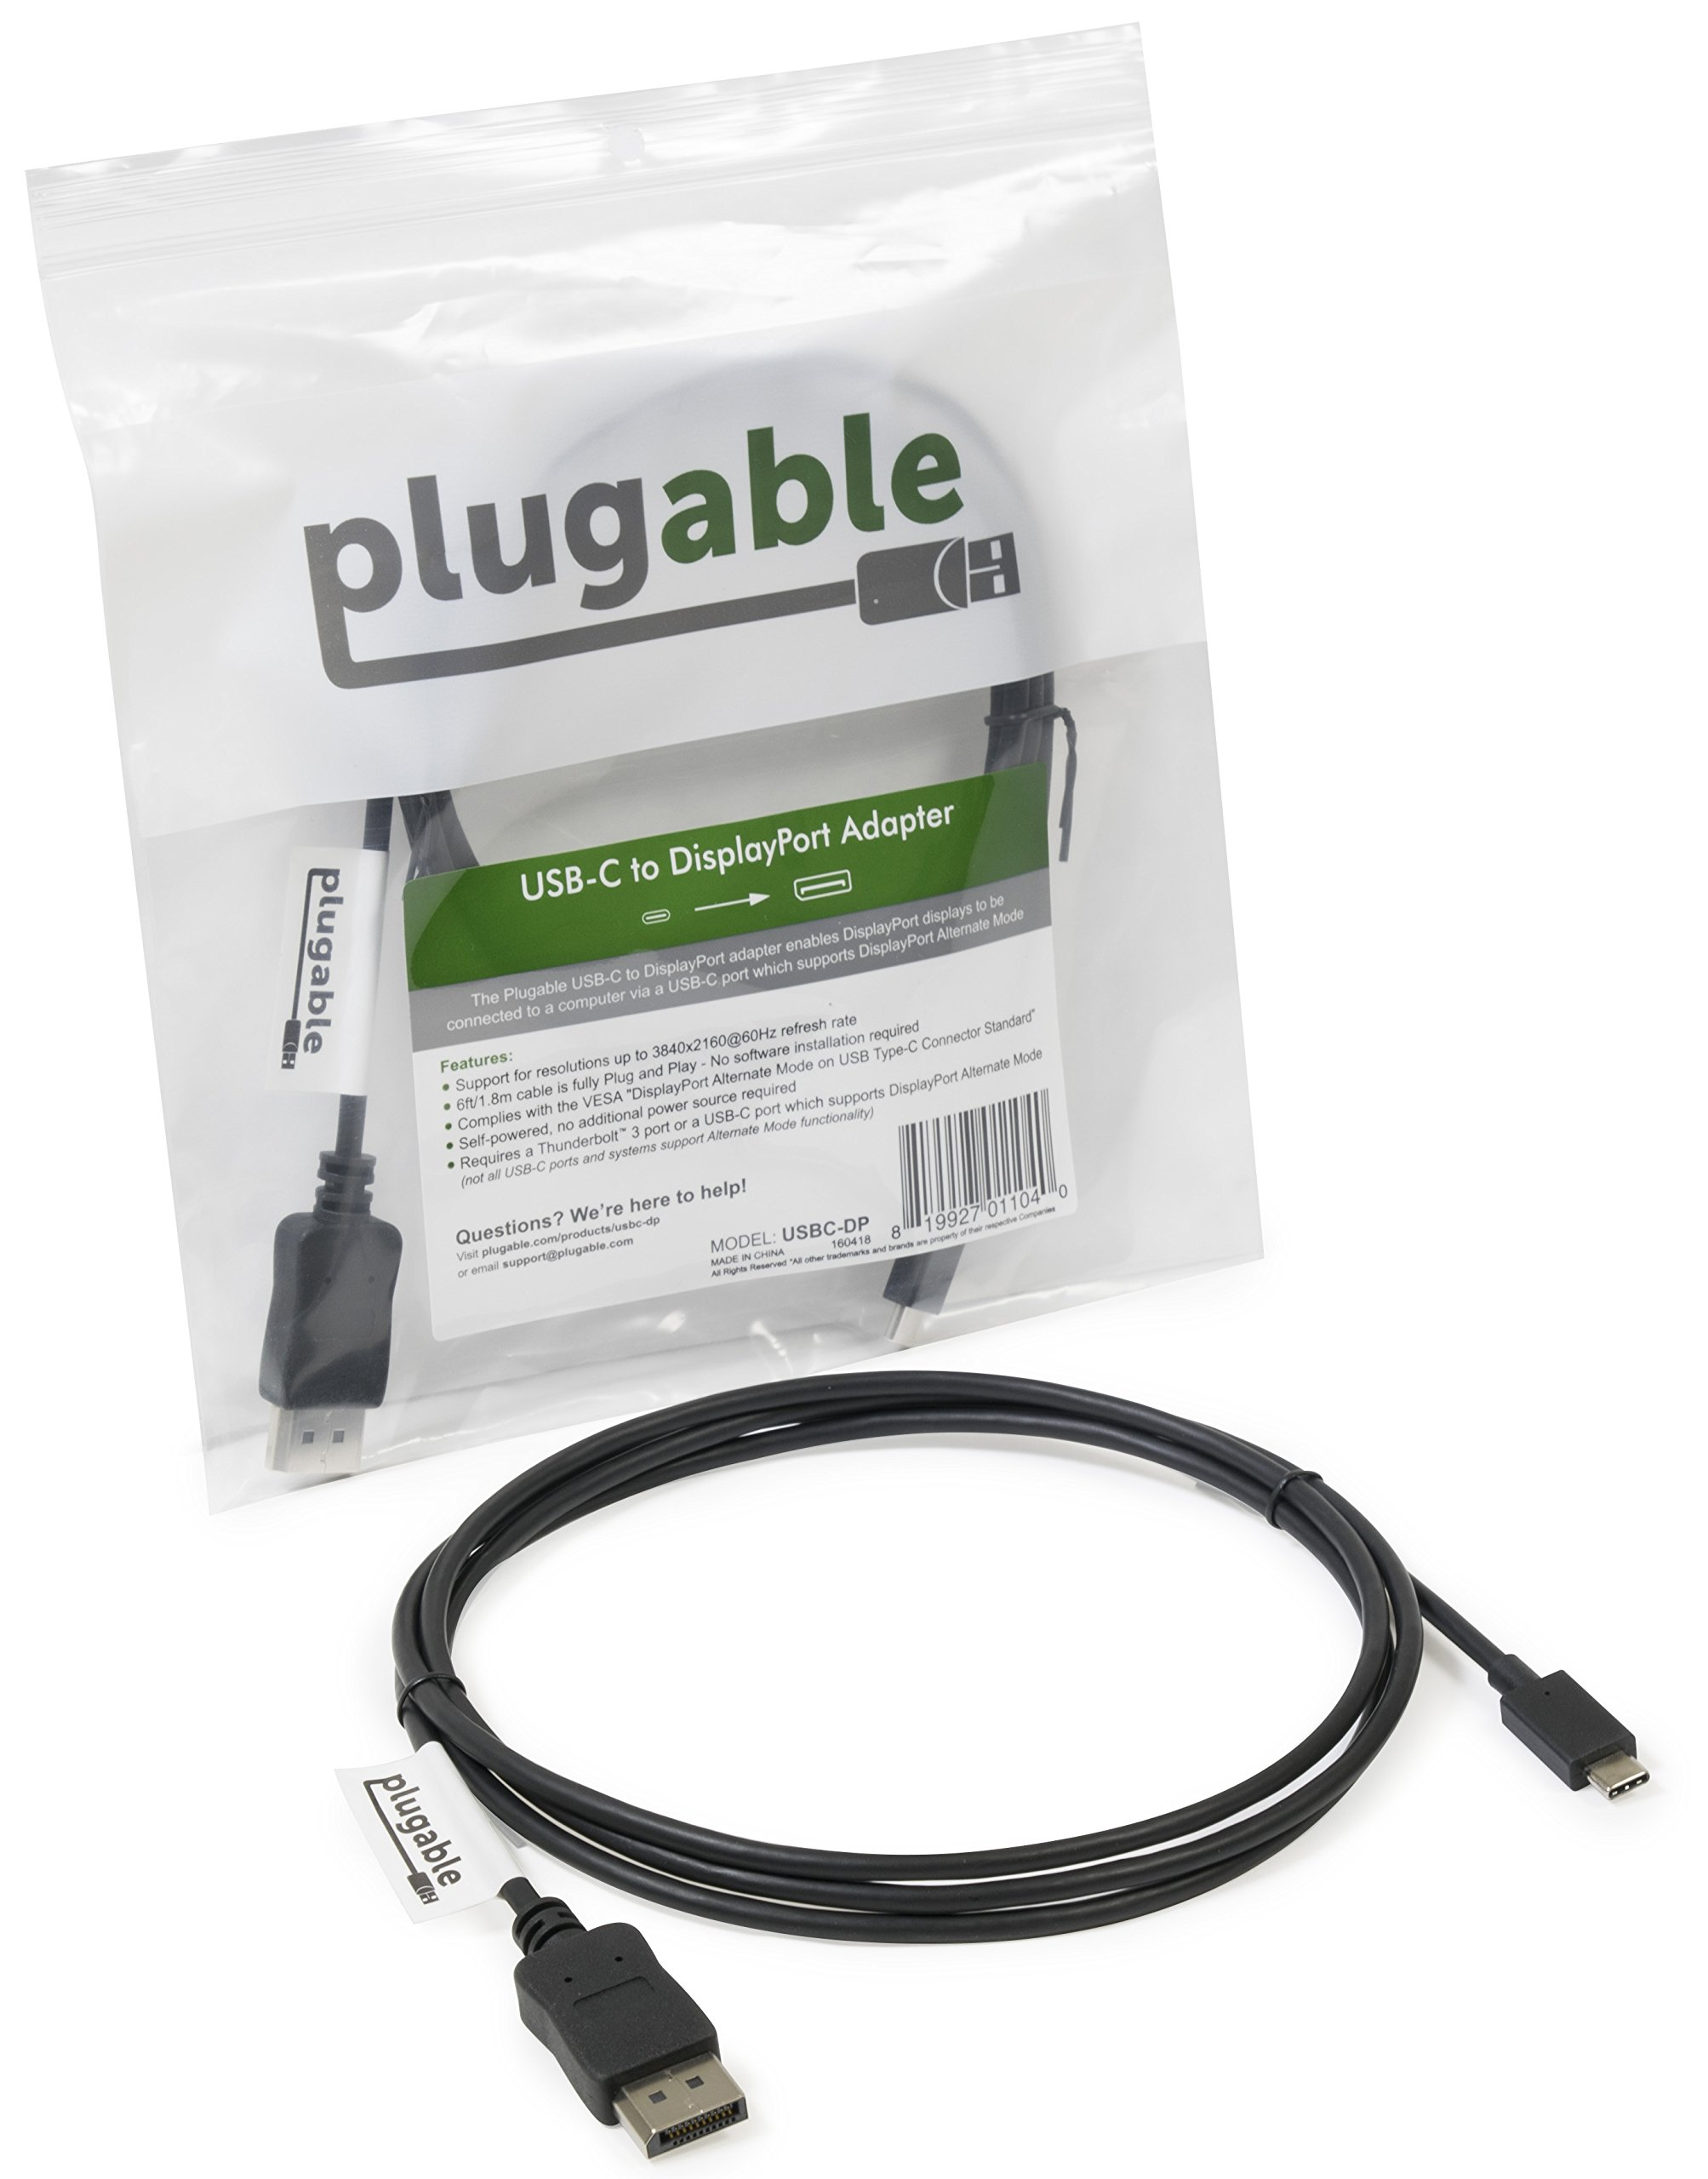 Plugable USB C to DisplayPort Adapter Cable - 6ft (1.8m) - Supports 4K at 60Hz by Plugable (Image #4)